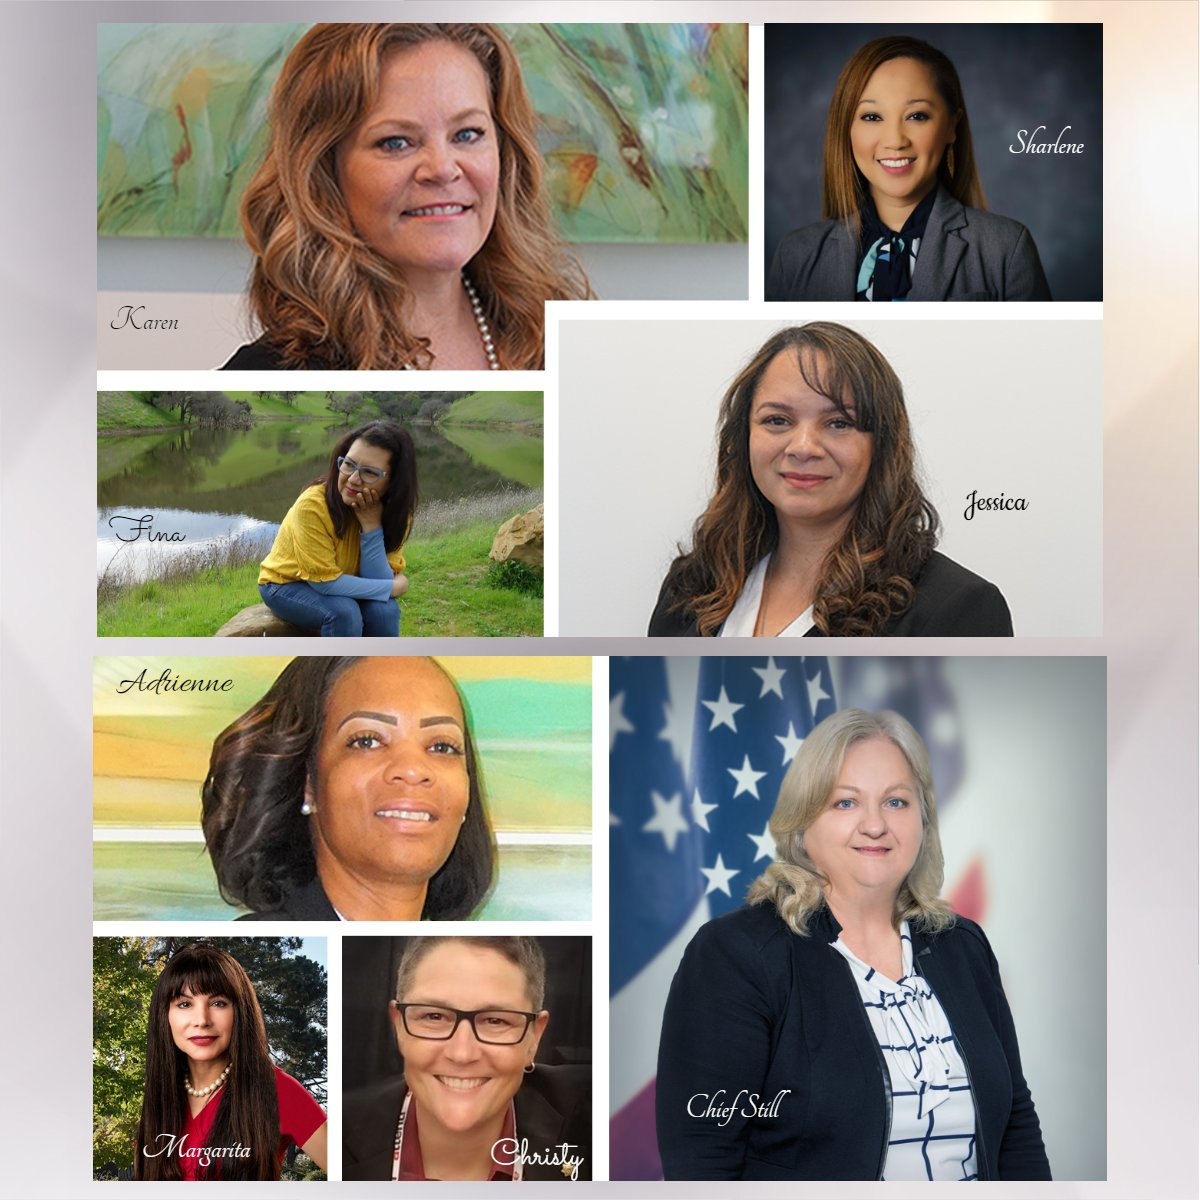 Last month, the ACPD hosted a Women in Probation Webinar in celebration of #WomensHistoryMonth .  We would like to share the webinar link with you to get to know a few of the many dedicated women leaders in Alameda County Probation. Thank you!   Link: